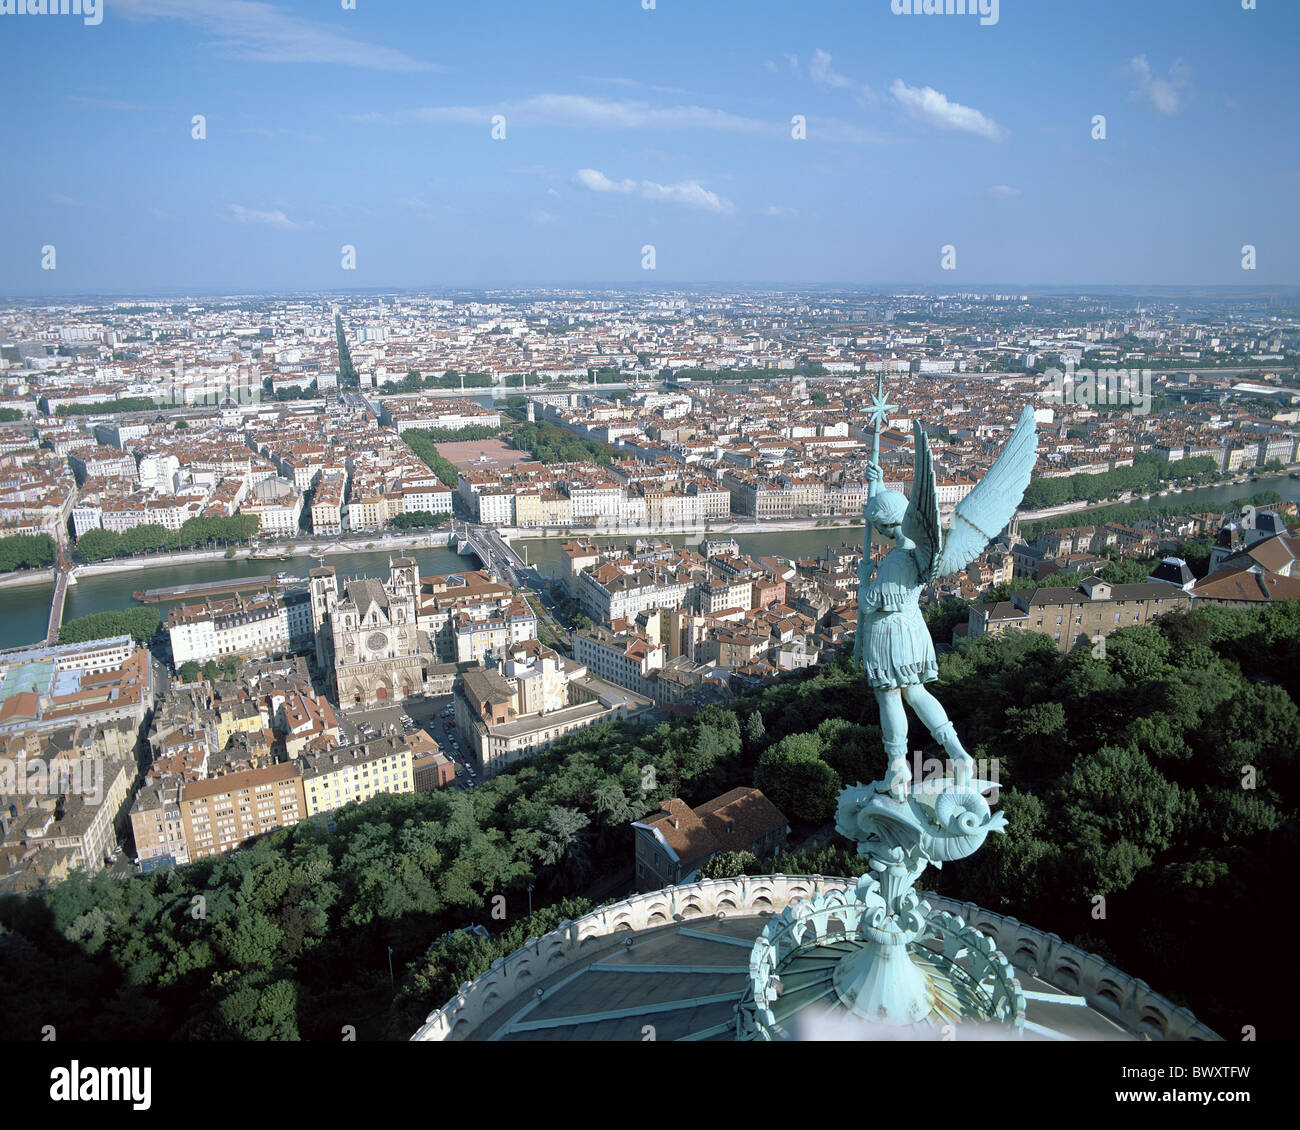 bronze angel's statue dome France Europe Lyons Rhone town city overview in front ahead - Stock Image